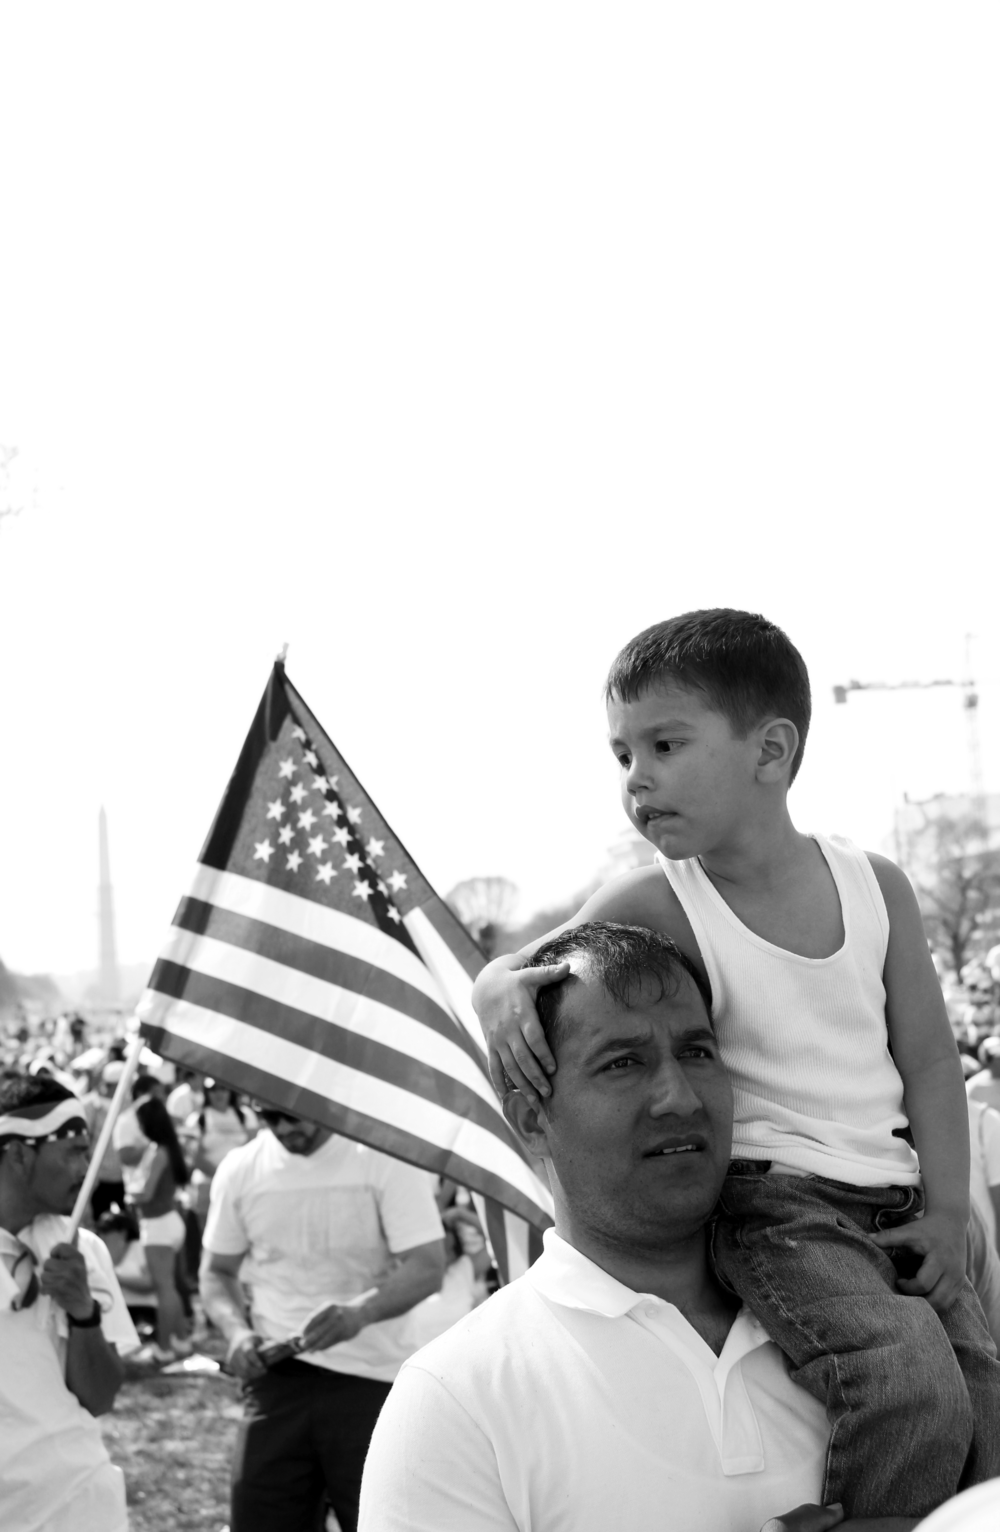 2013 Rally for Immigration Reform, Washington DC